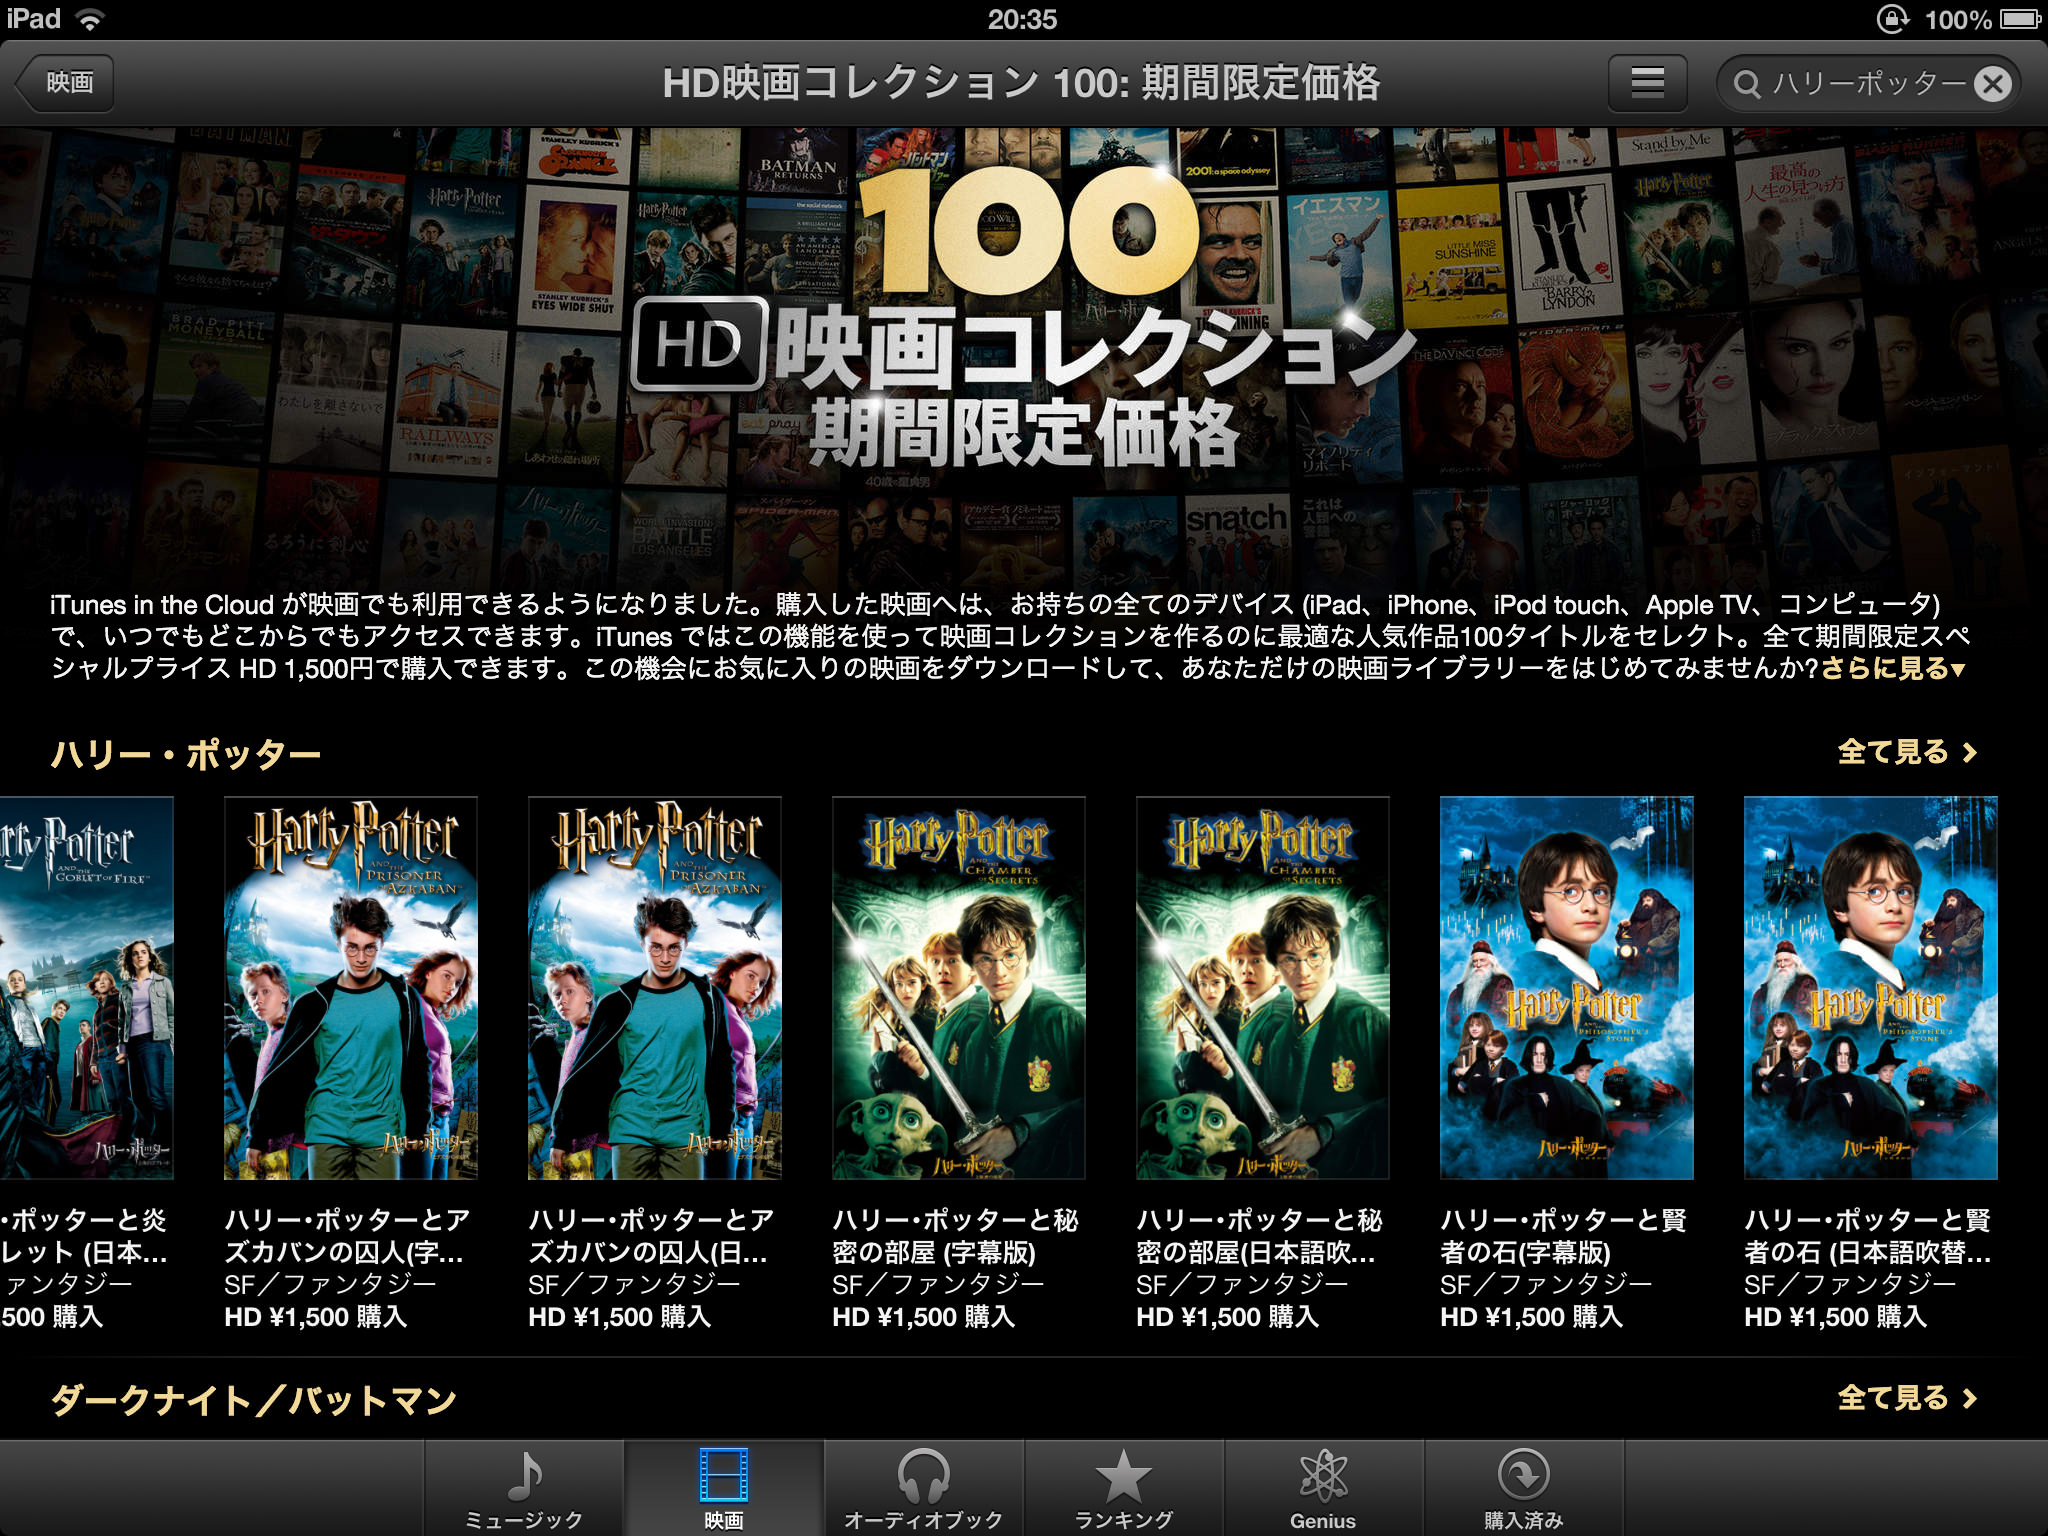 iTunes in the cloud 映画 日本対応